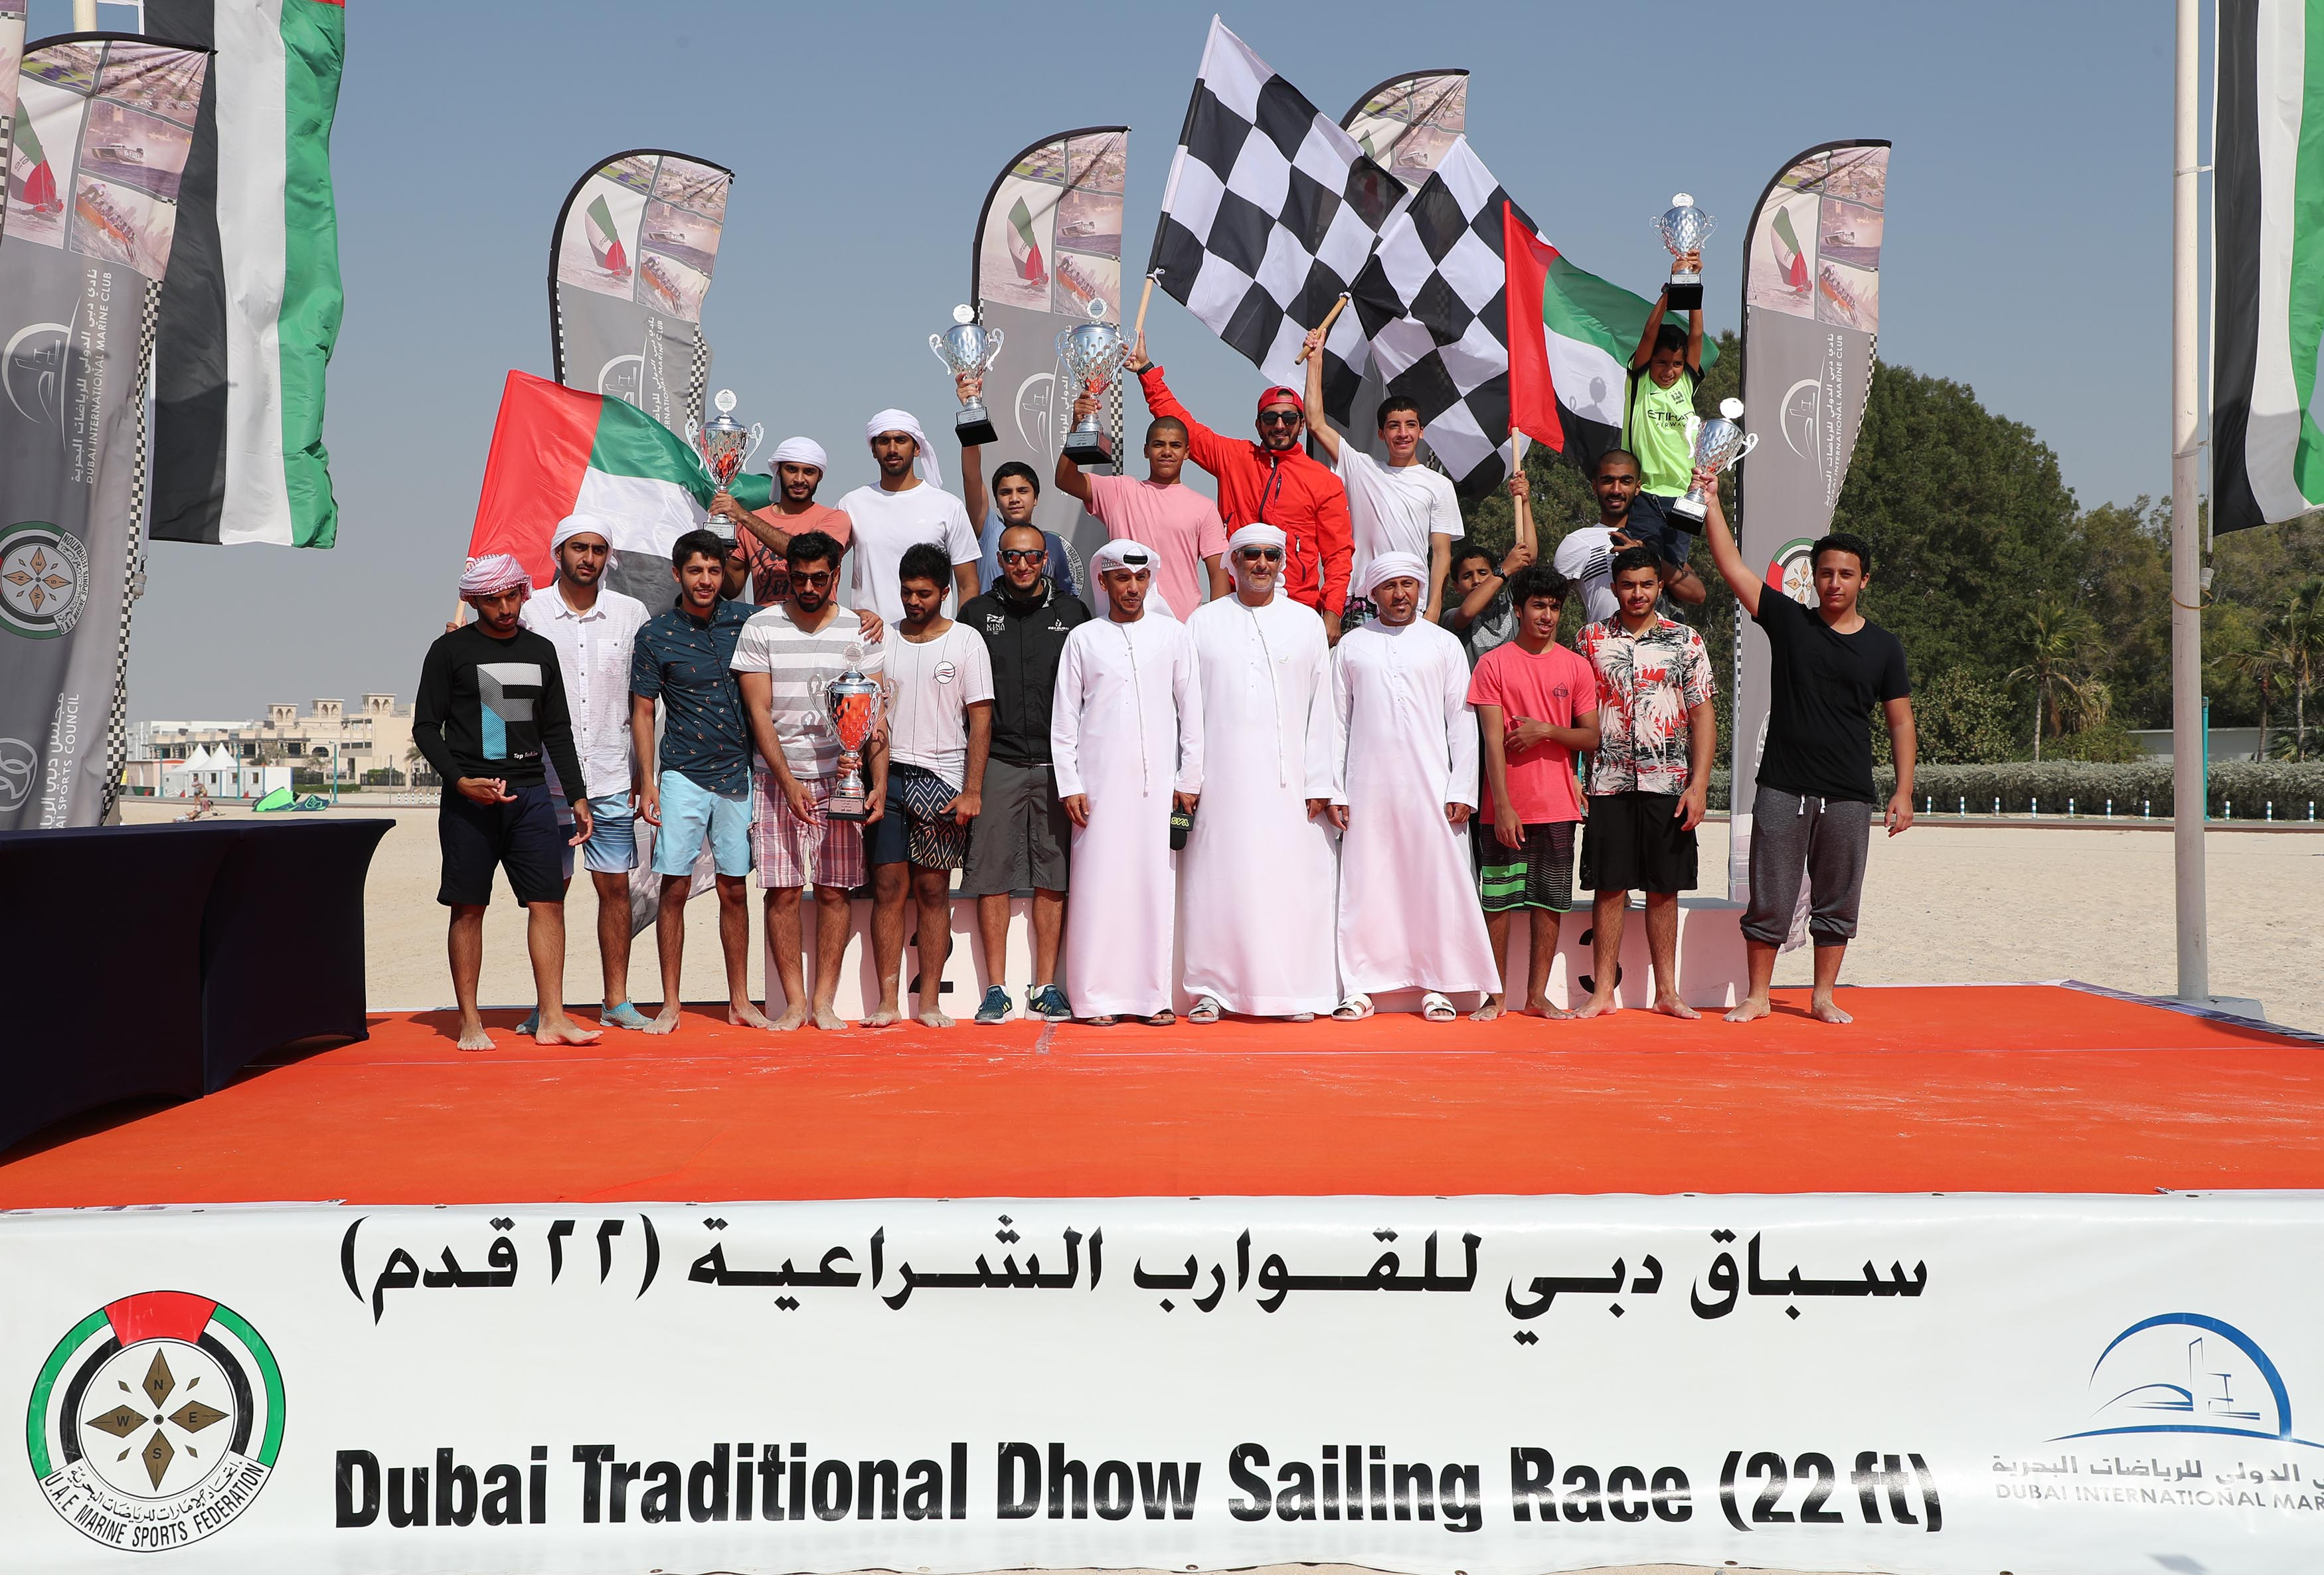 Zilzal 87 Crowned as Champion of the 22ft Dhow Race